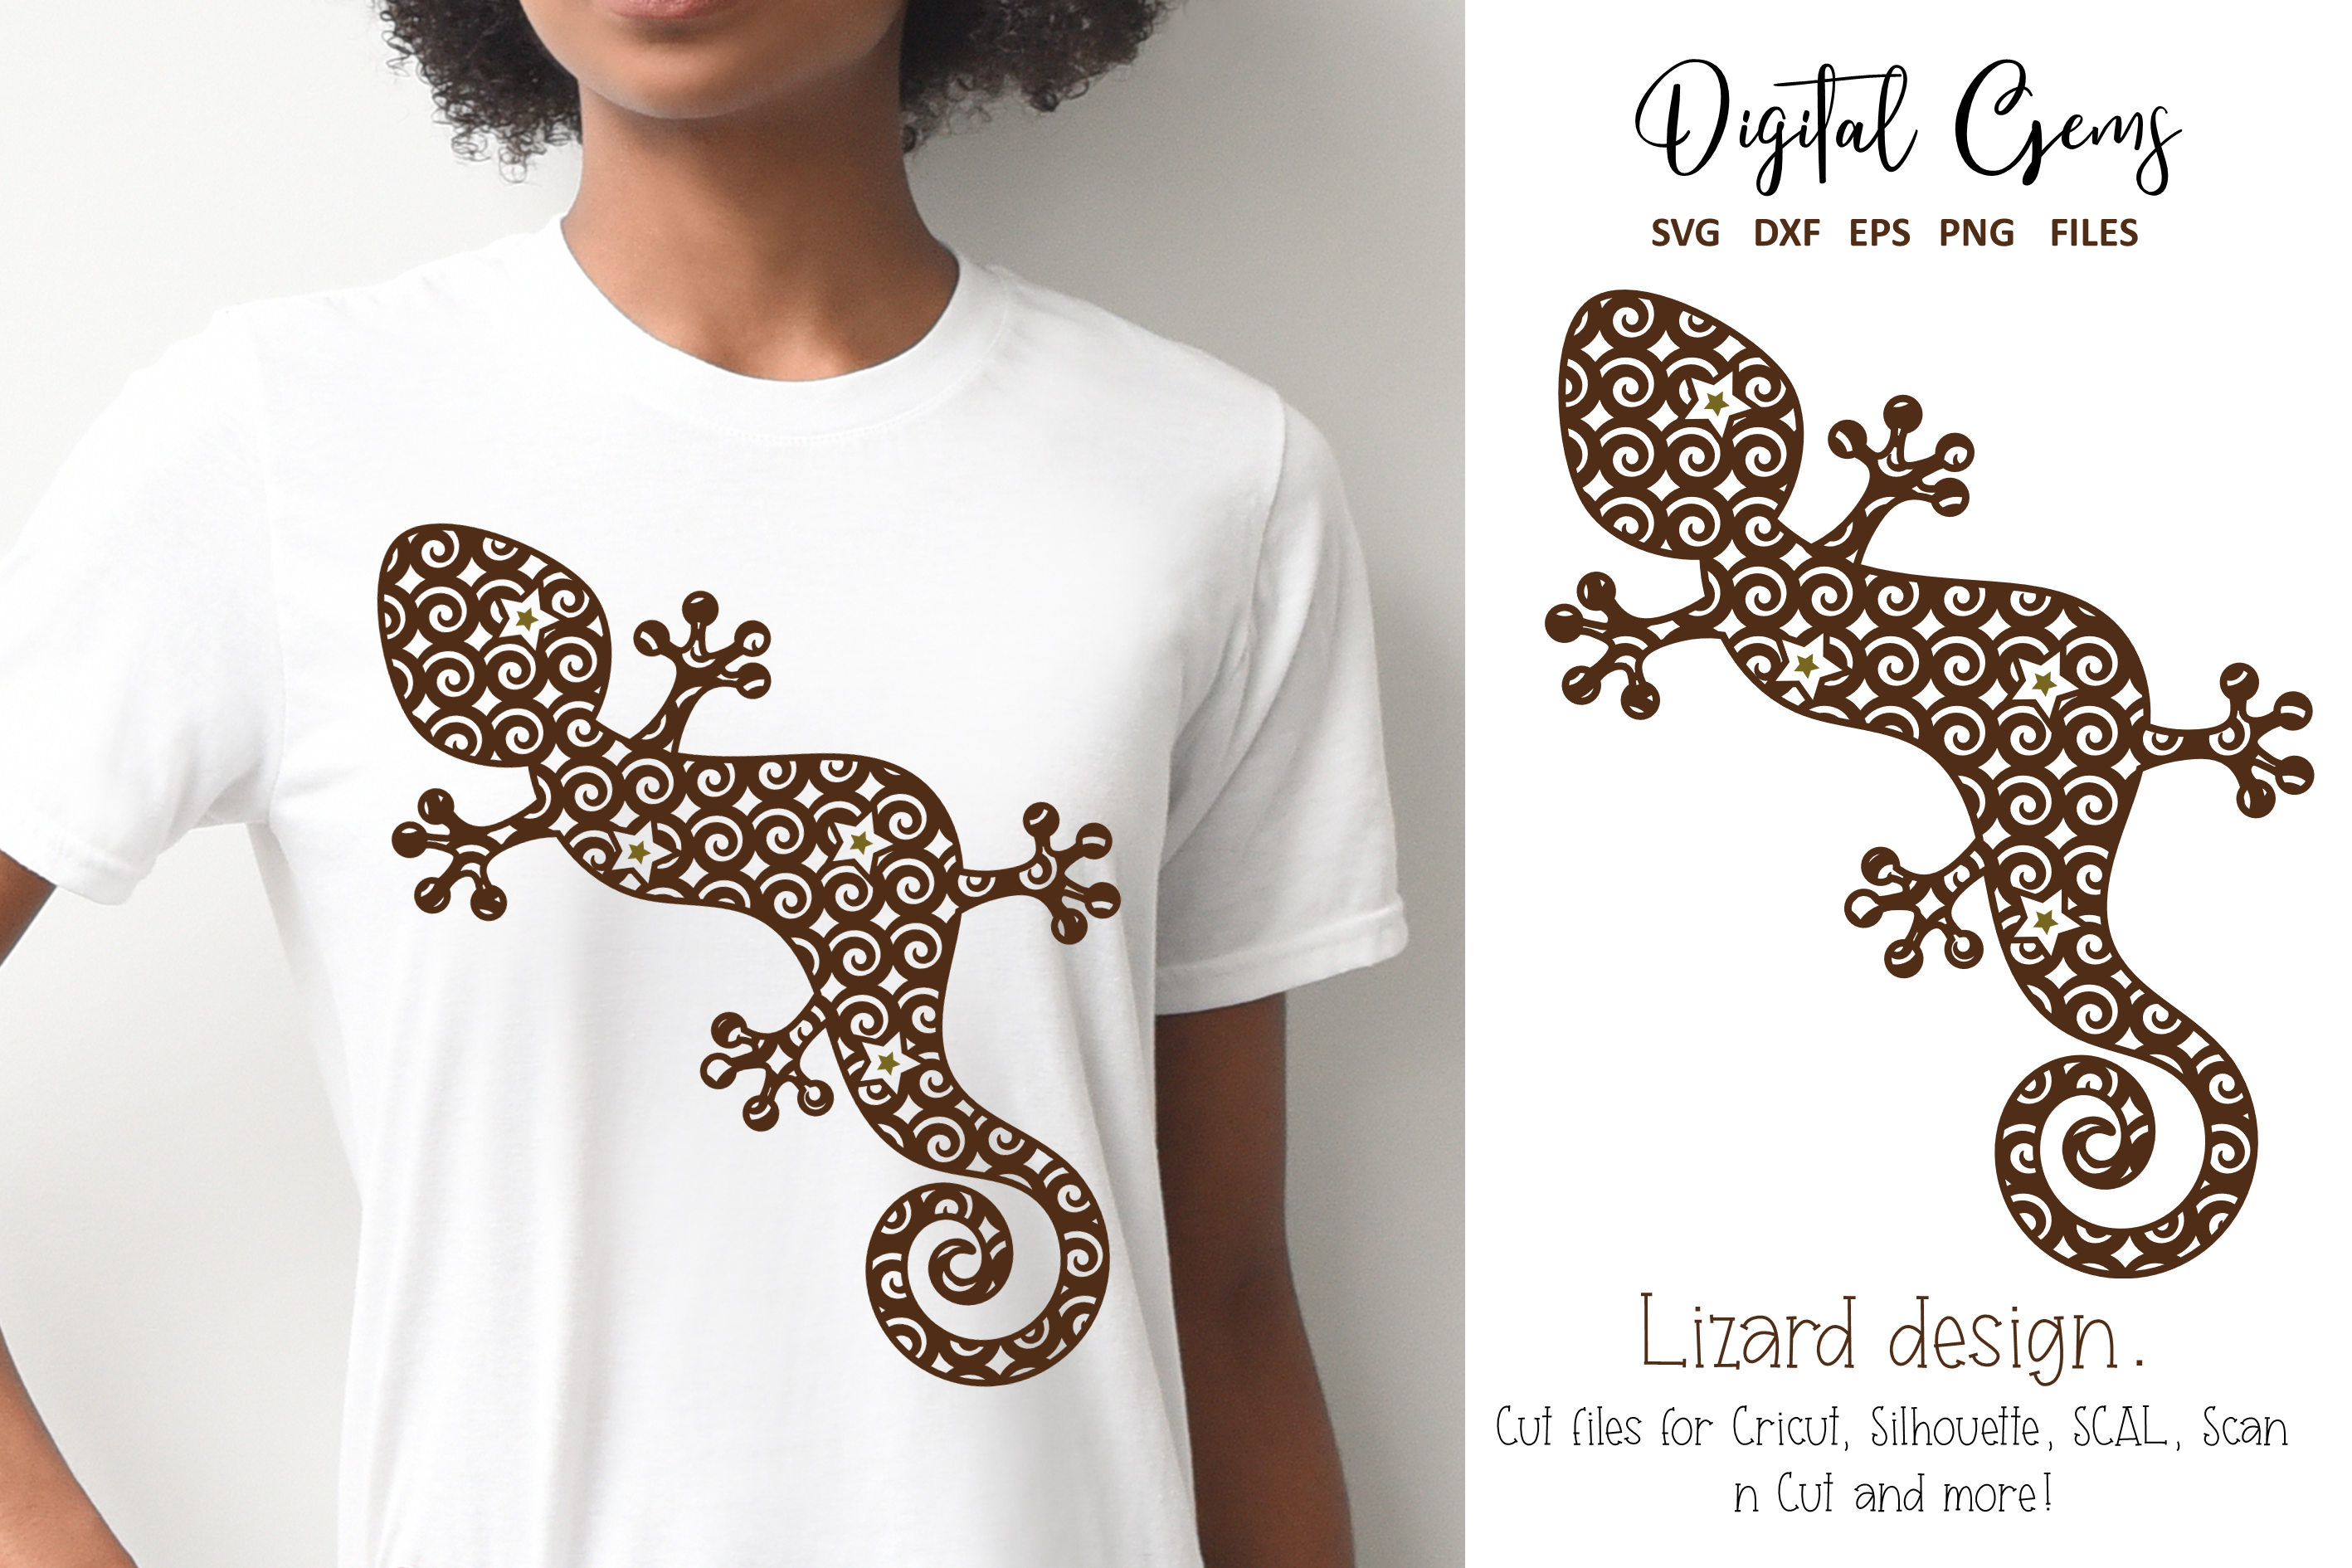 Download Free Lizard Design Graphic By Digital Gems Creative Fabrica for Cricut Explore, Silhouette and other cutting machines.